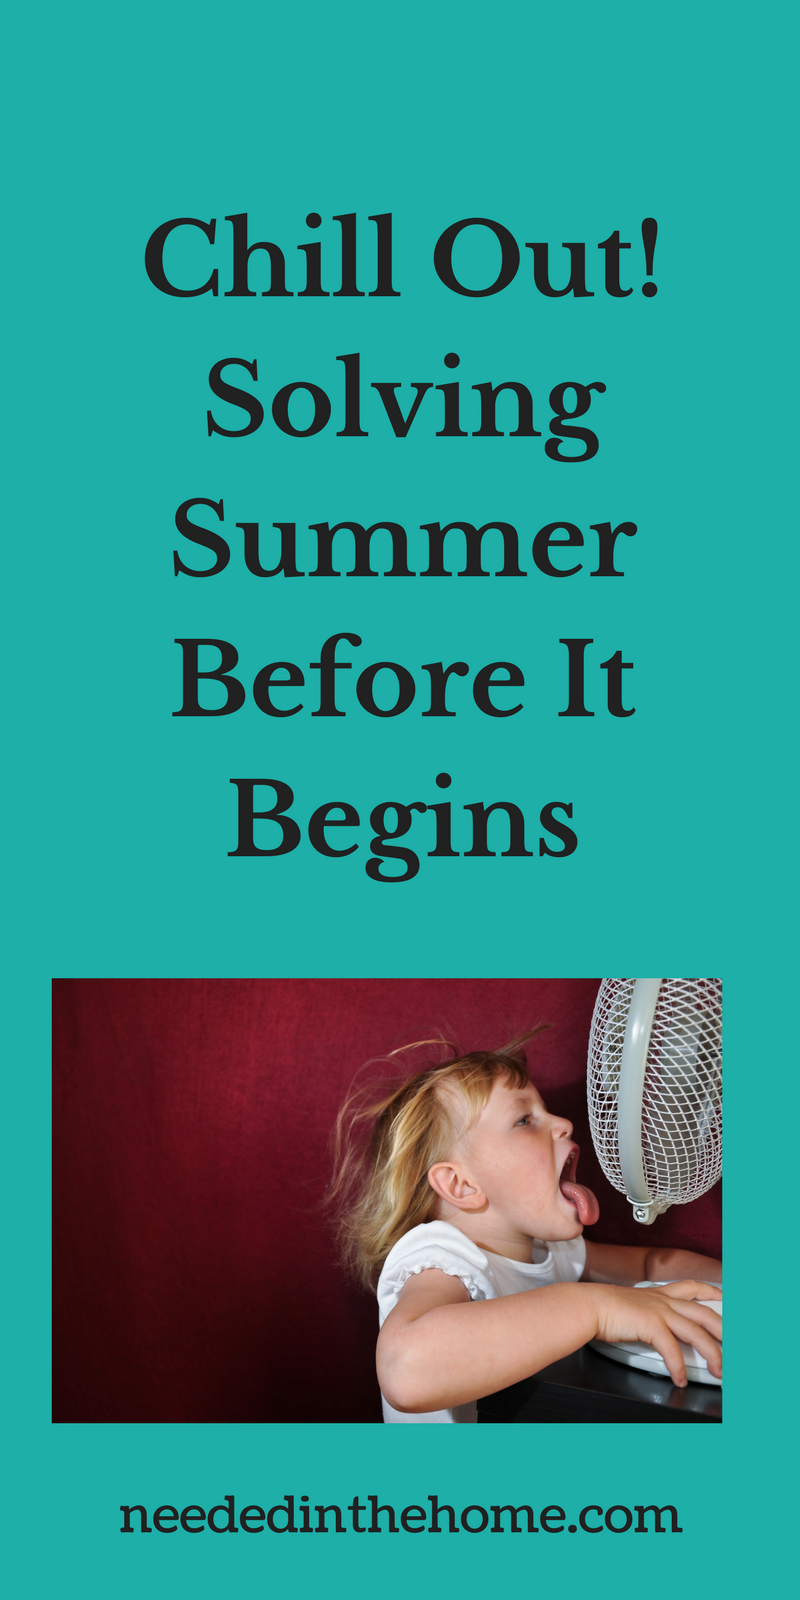 Chill Out! Solving Summer Before It Begins